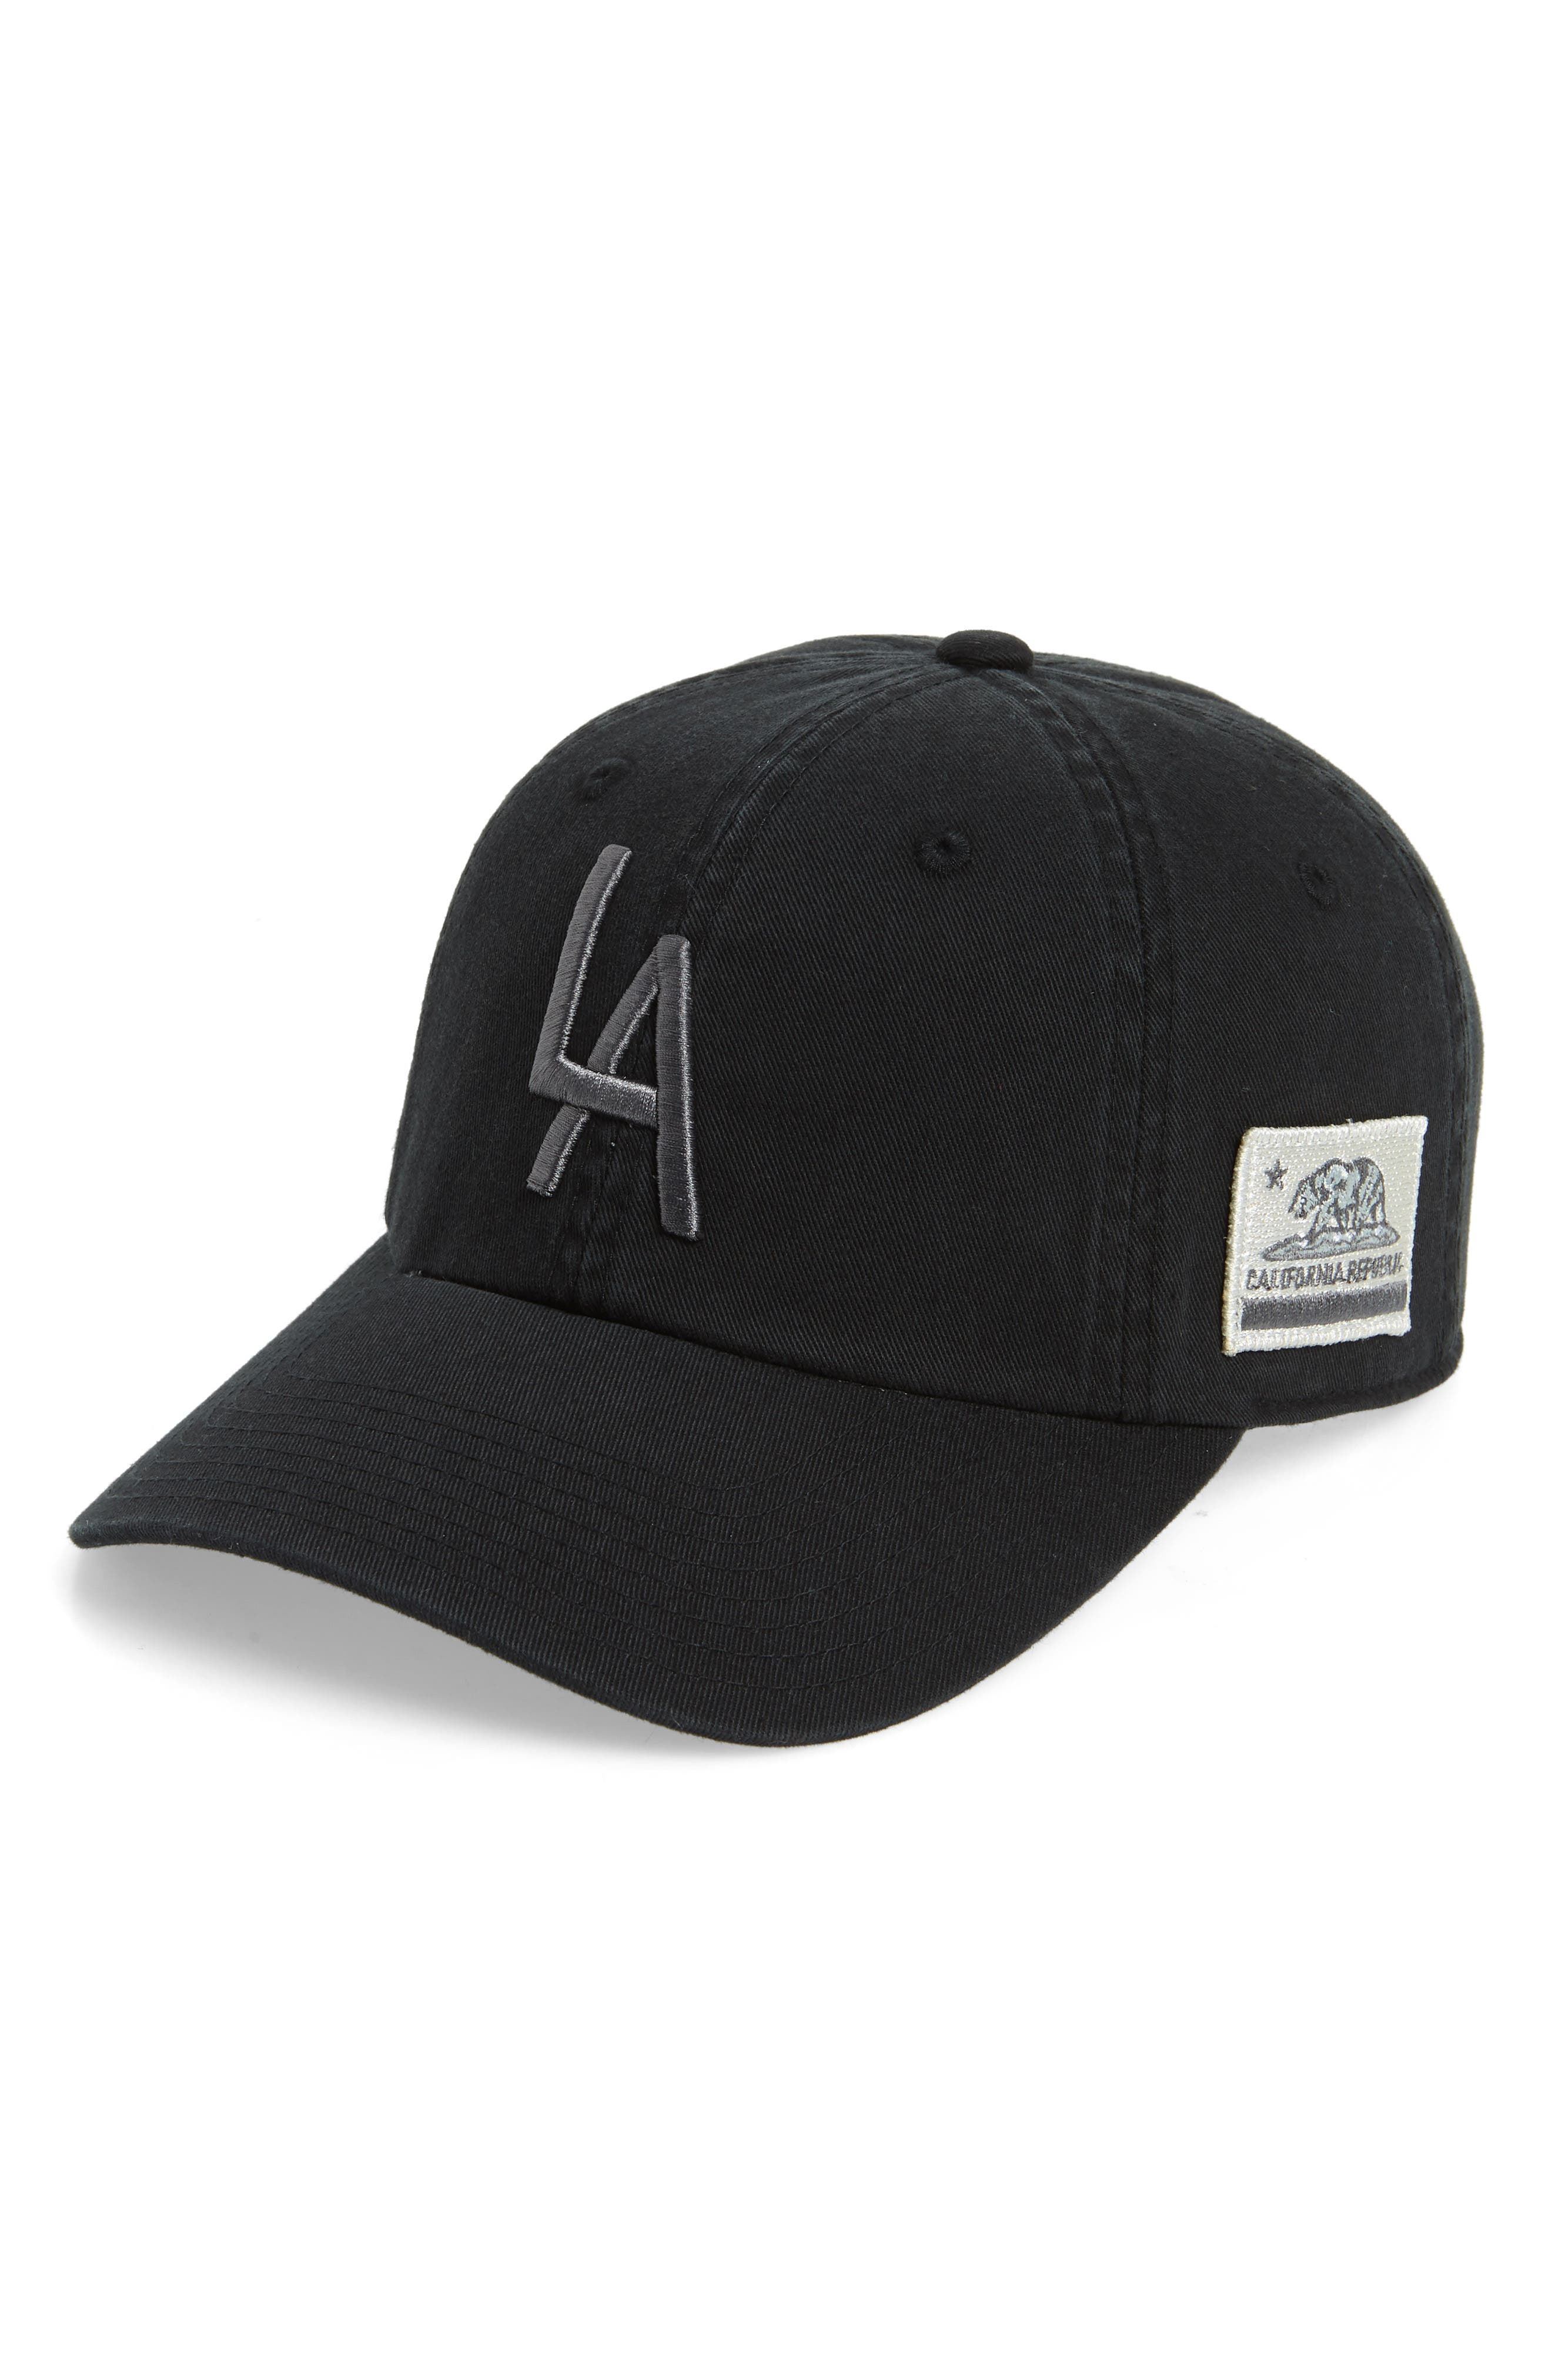 United Slouch Los Angeles Ball Cap,                             Main thumbnail 1, color,                             Ivory/ Black